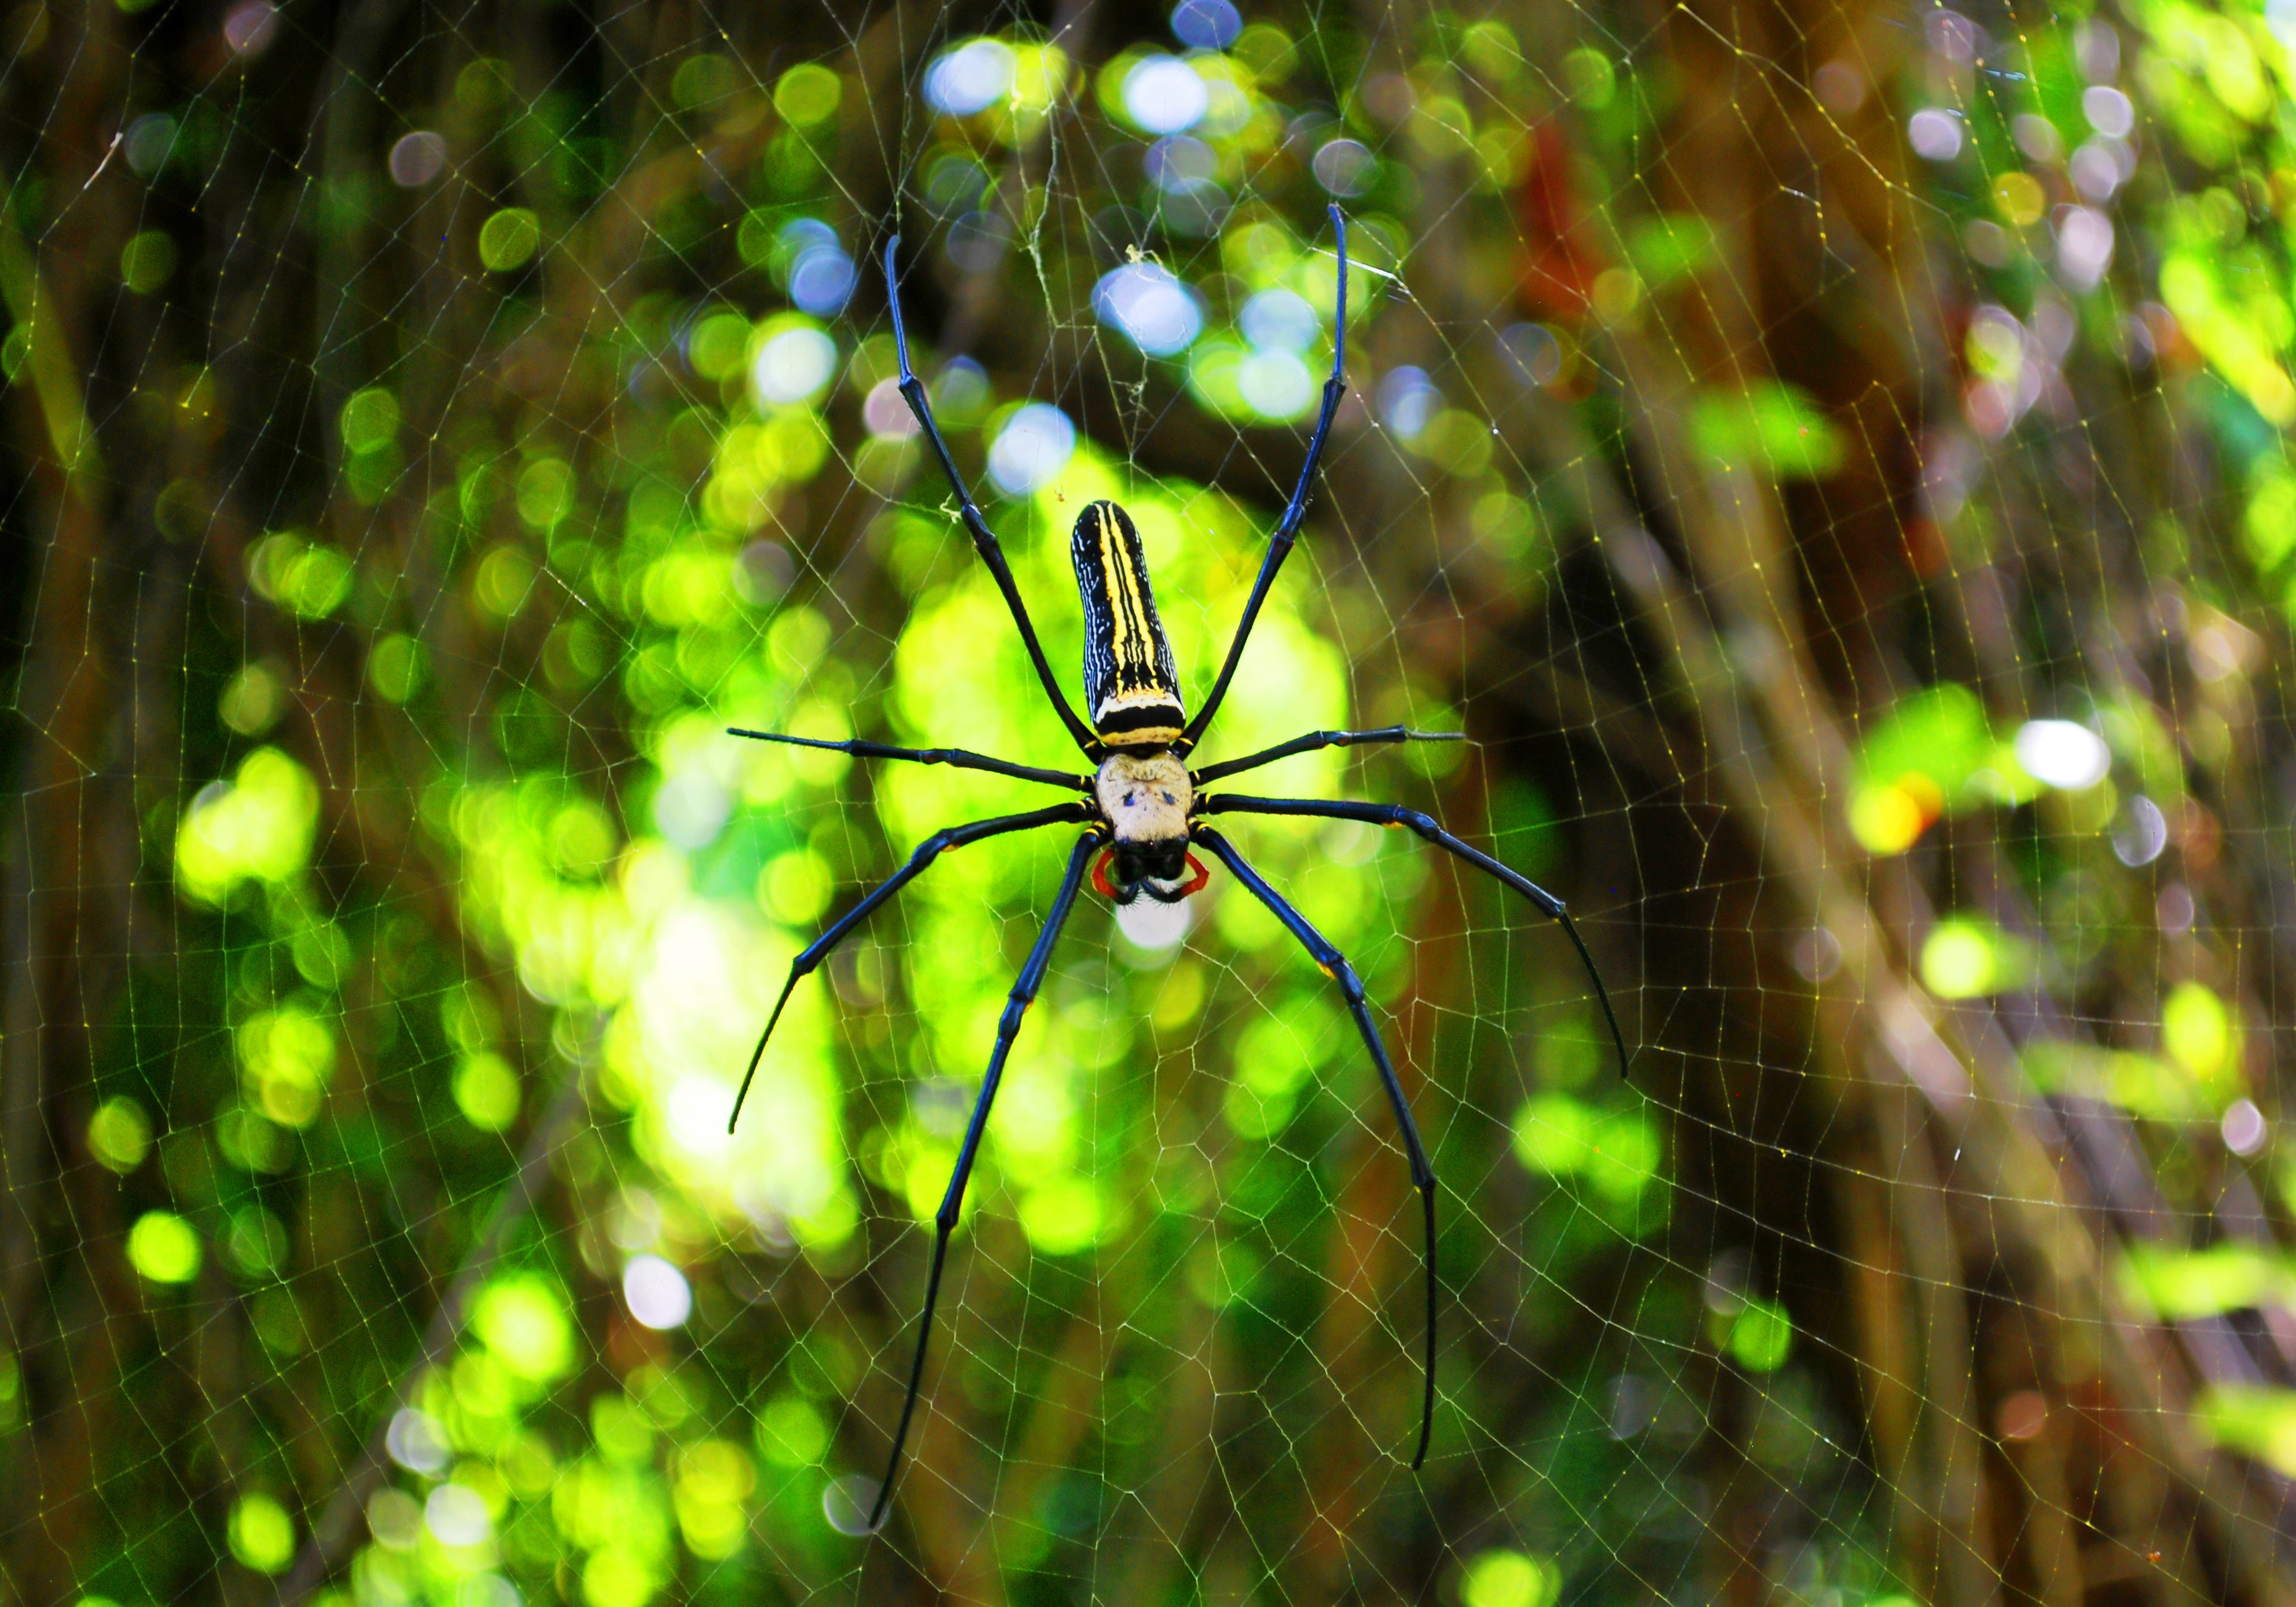 Macro Photography of Argiope Spider on Web